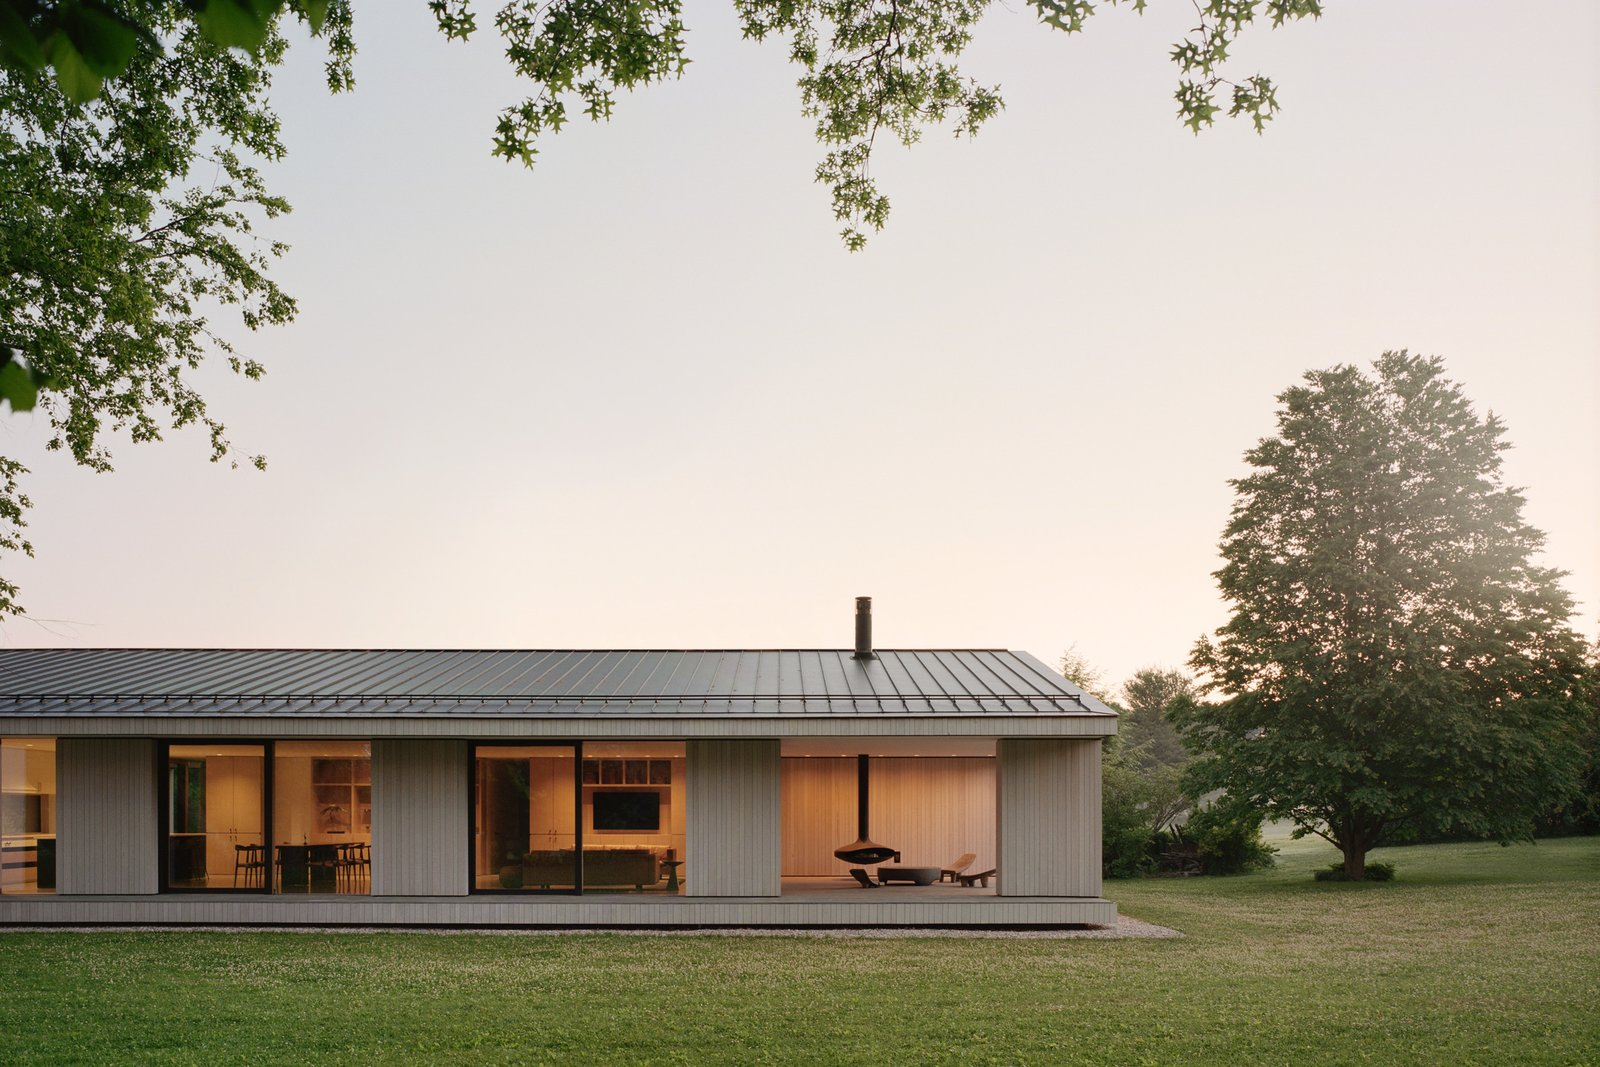 Sheffield residence by Vincent Appel / Of Possible exterior at dusk